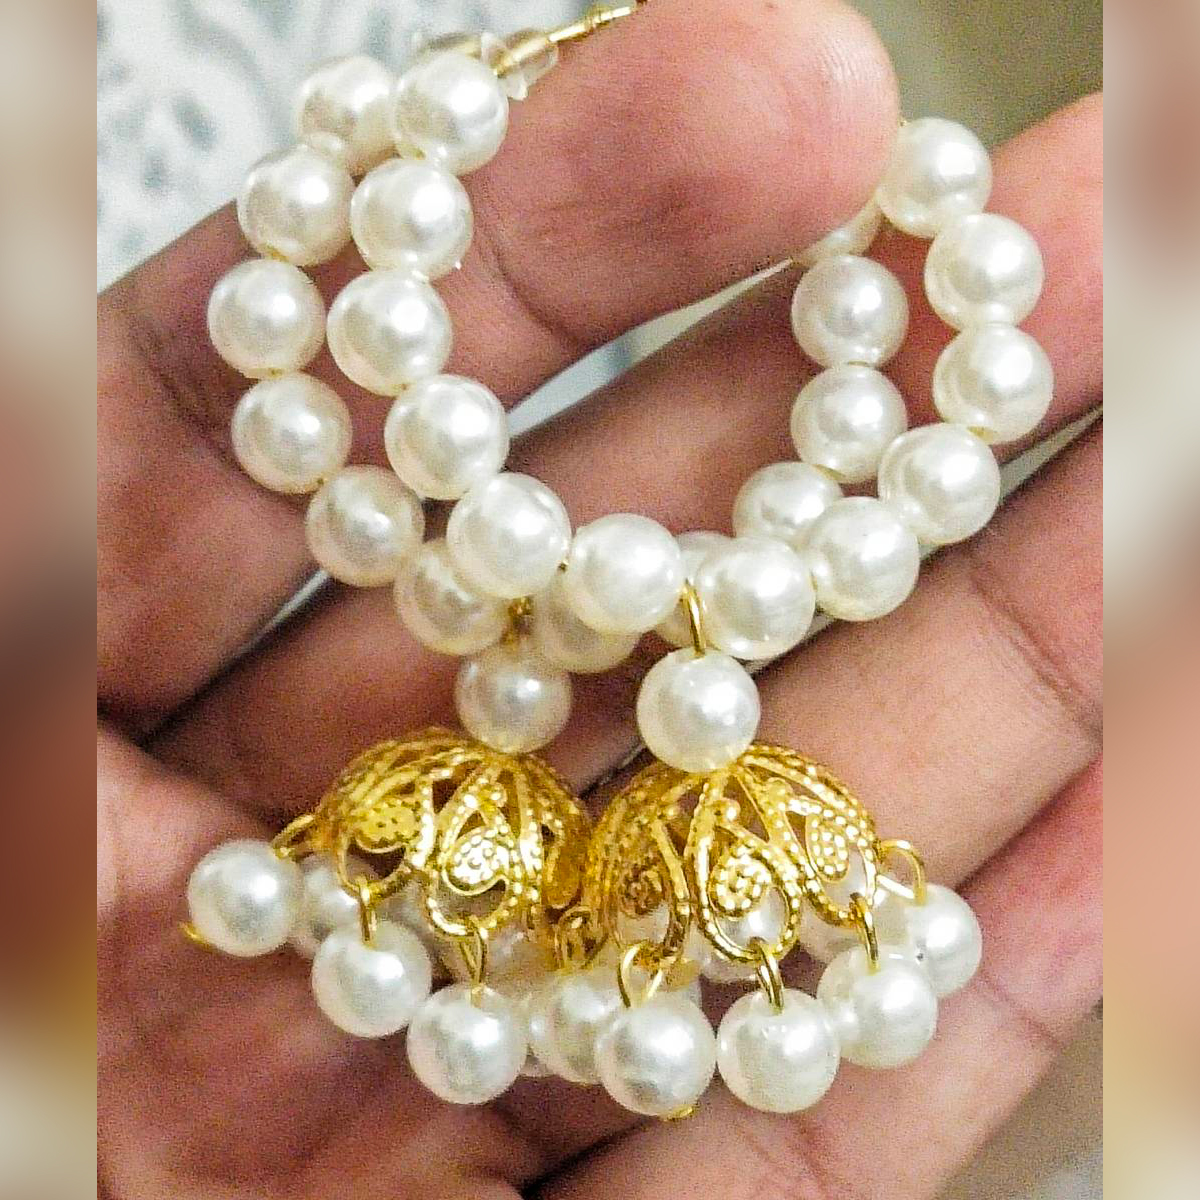 New White shine Pearl Gold Plated Jhumka Design Round Baliya earrings for Weddings, Events and Parties